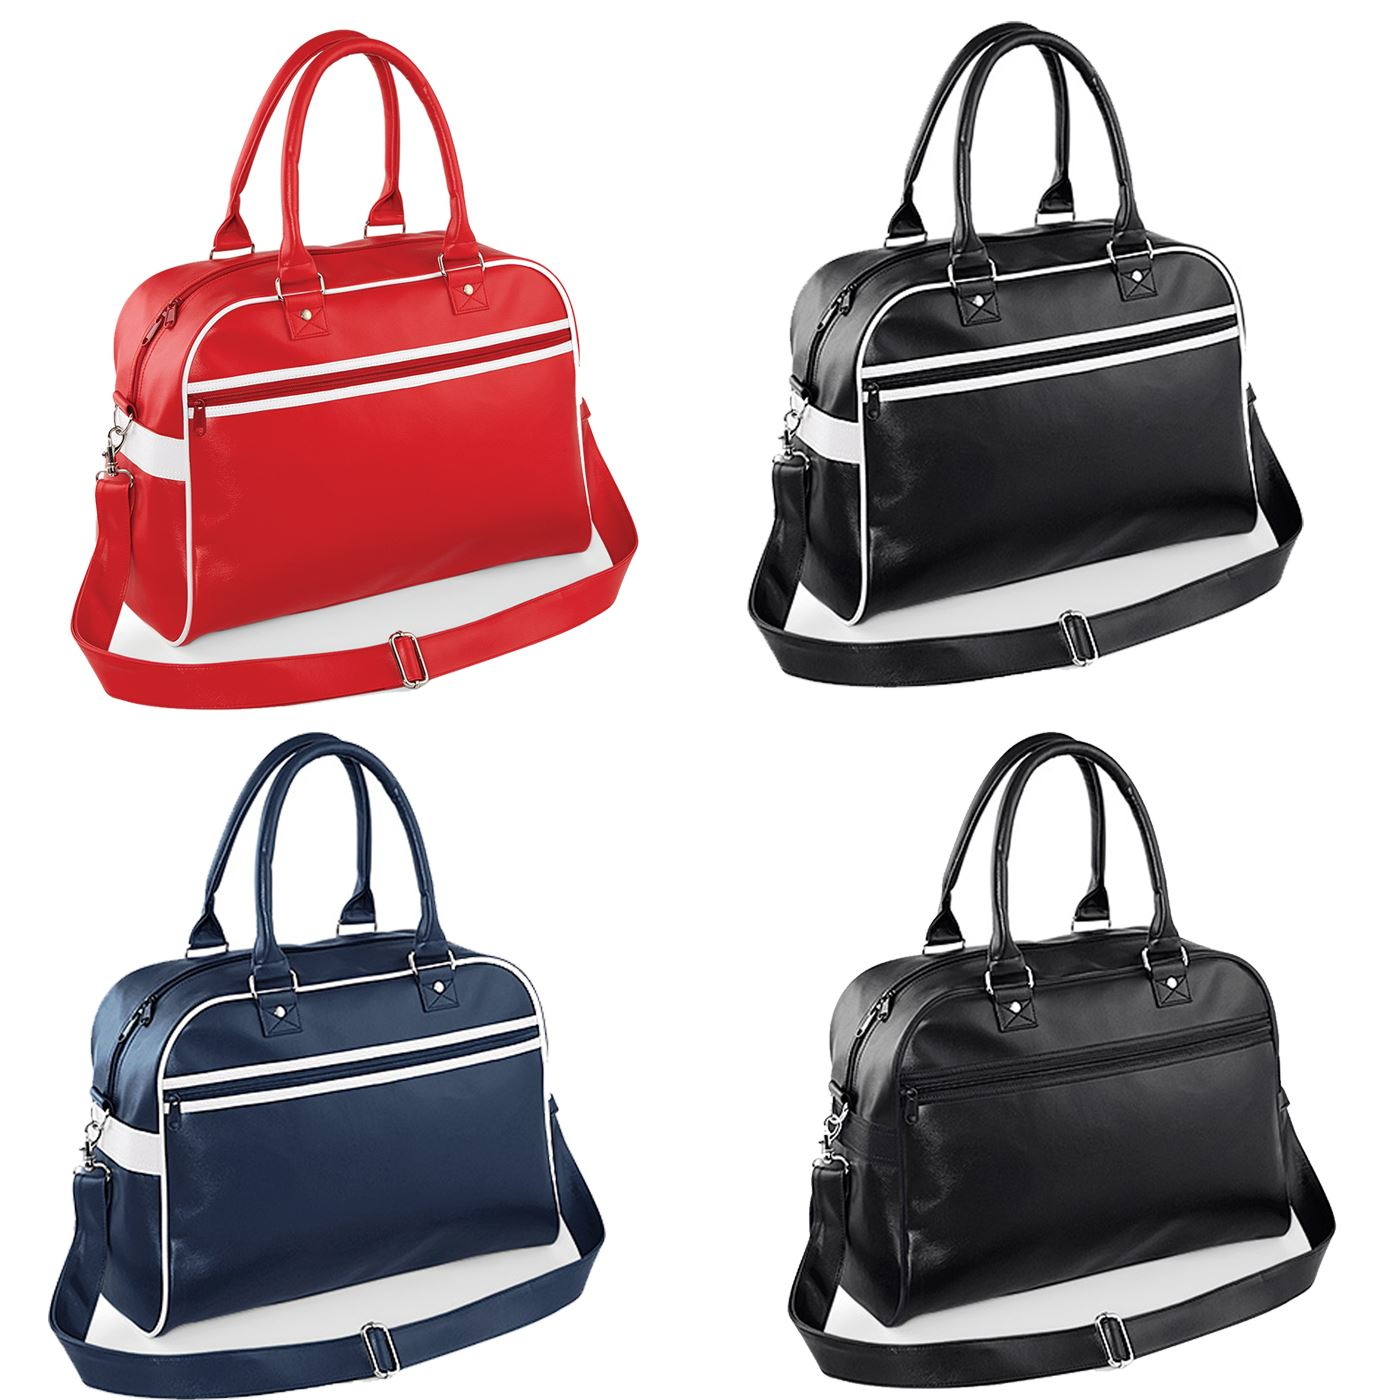 Bagbase Retro Bowling Bag Unisex Mens Womens Holdall Handbag Gym Travel BG75